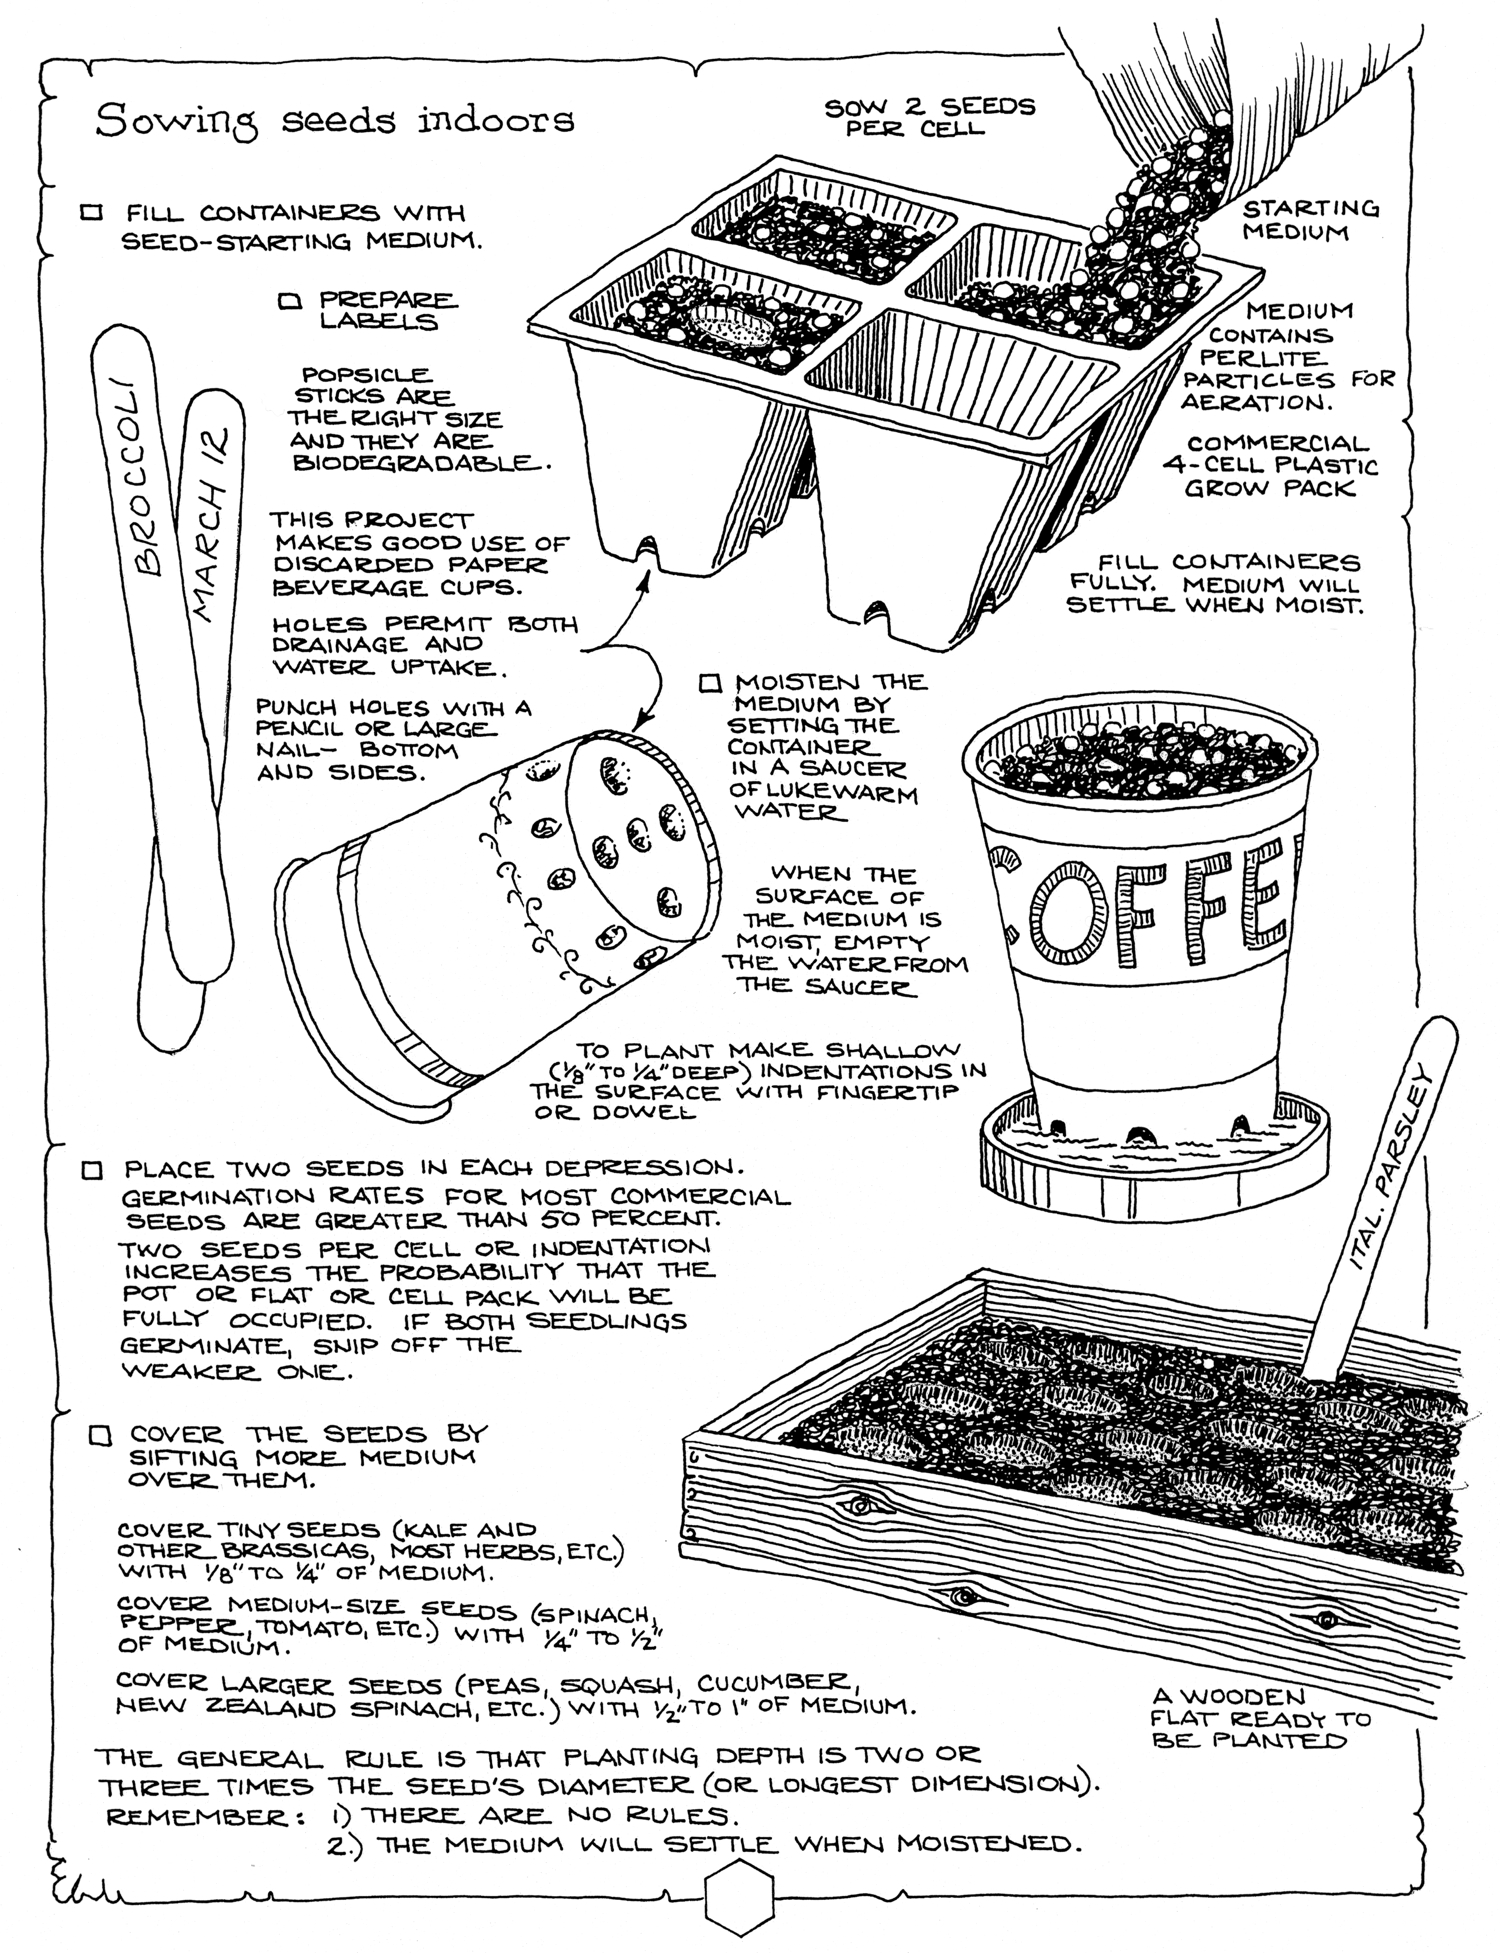 Sample page from Gardening Methods: Sowing Seeds Indoors